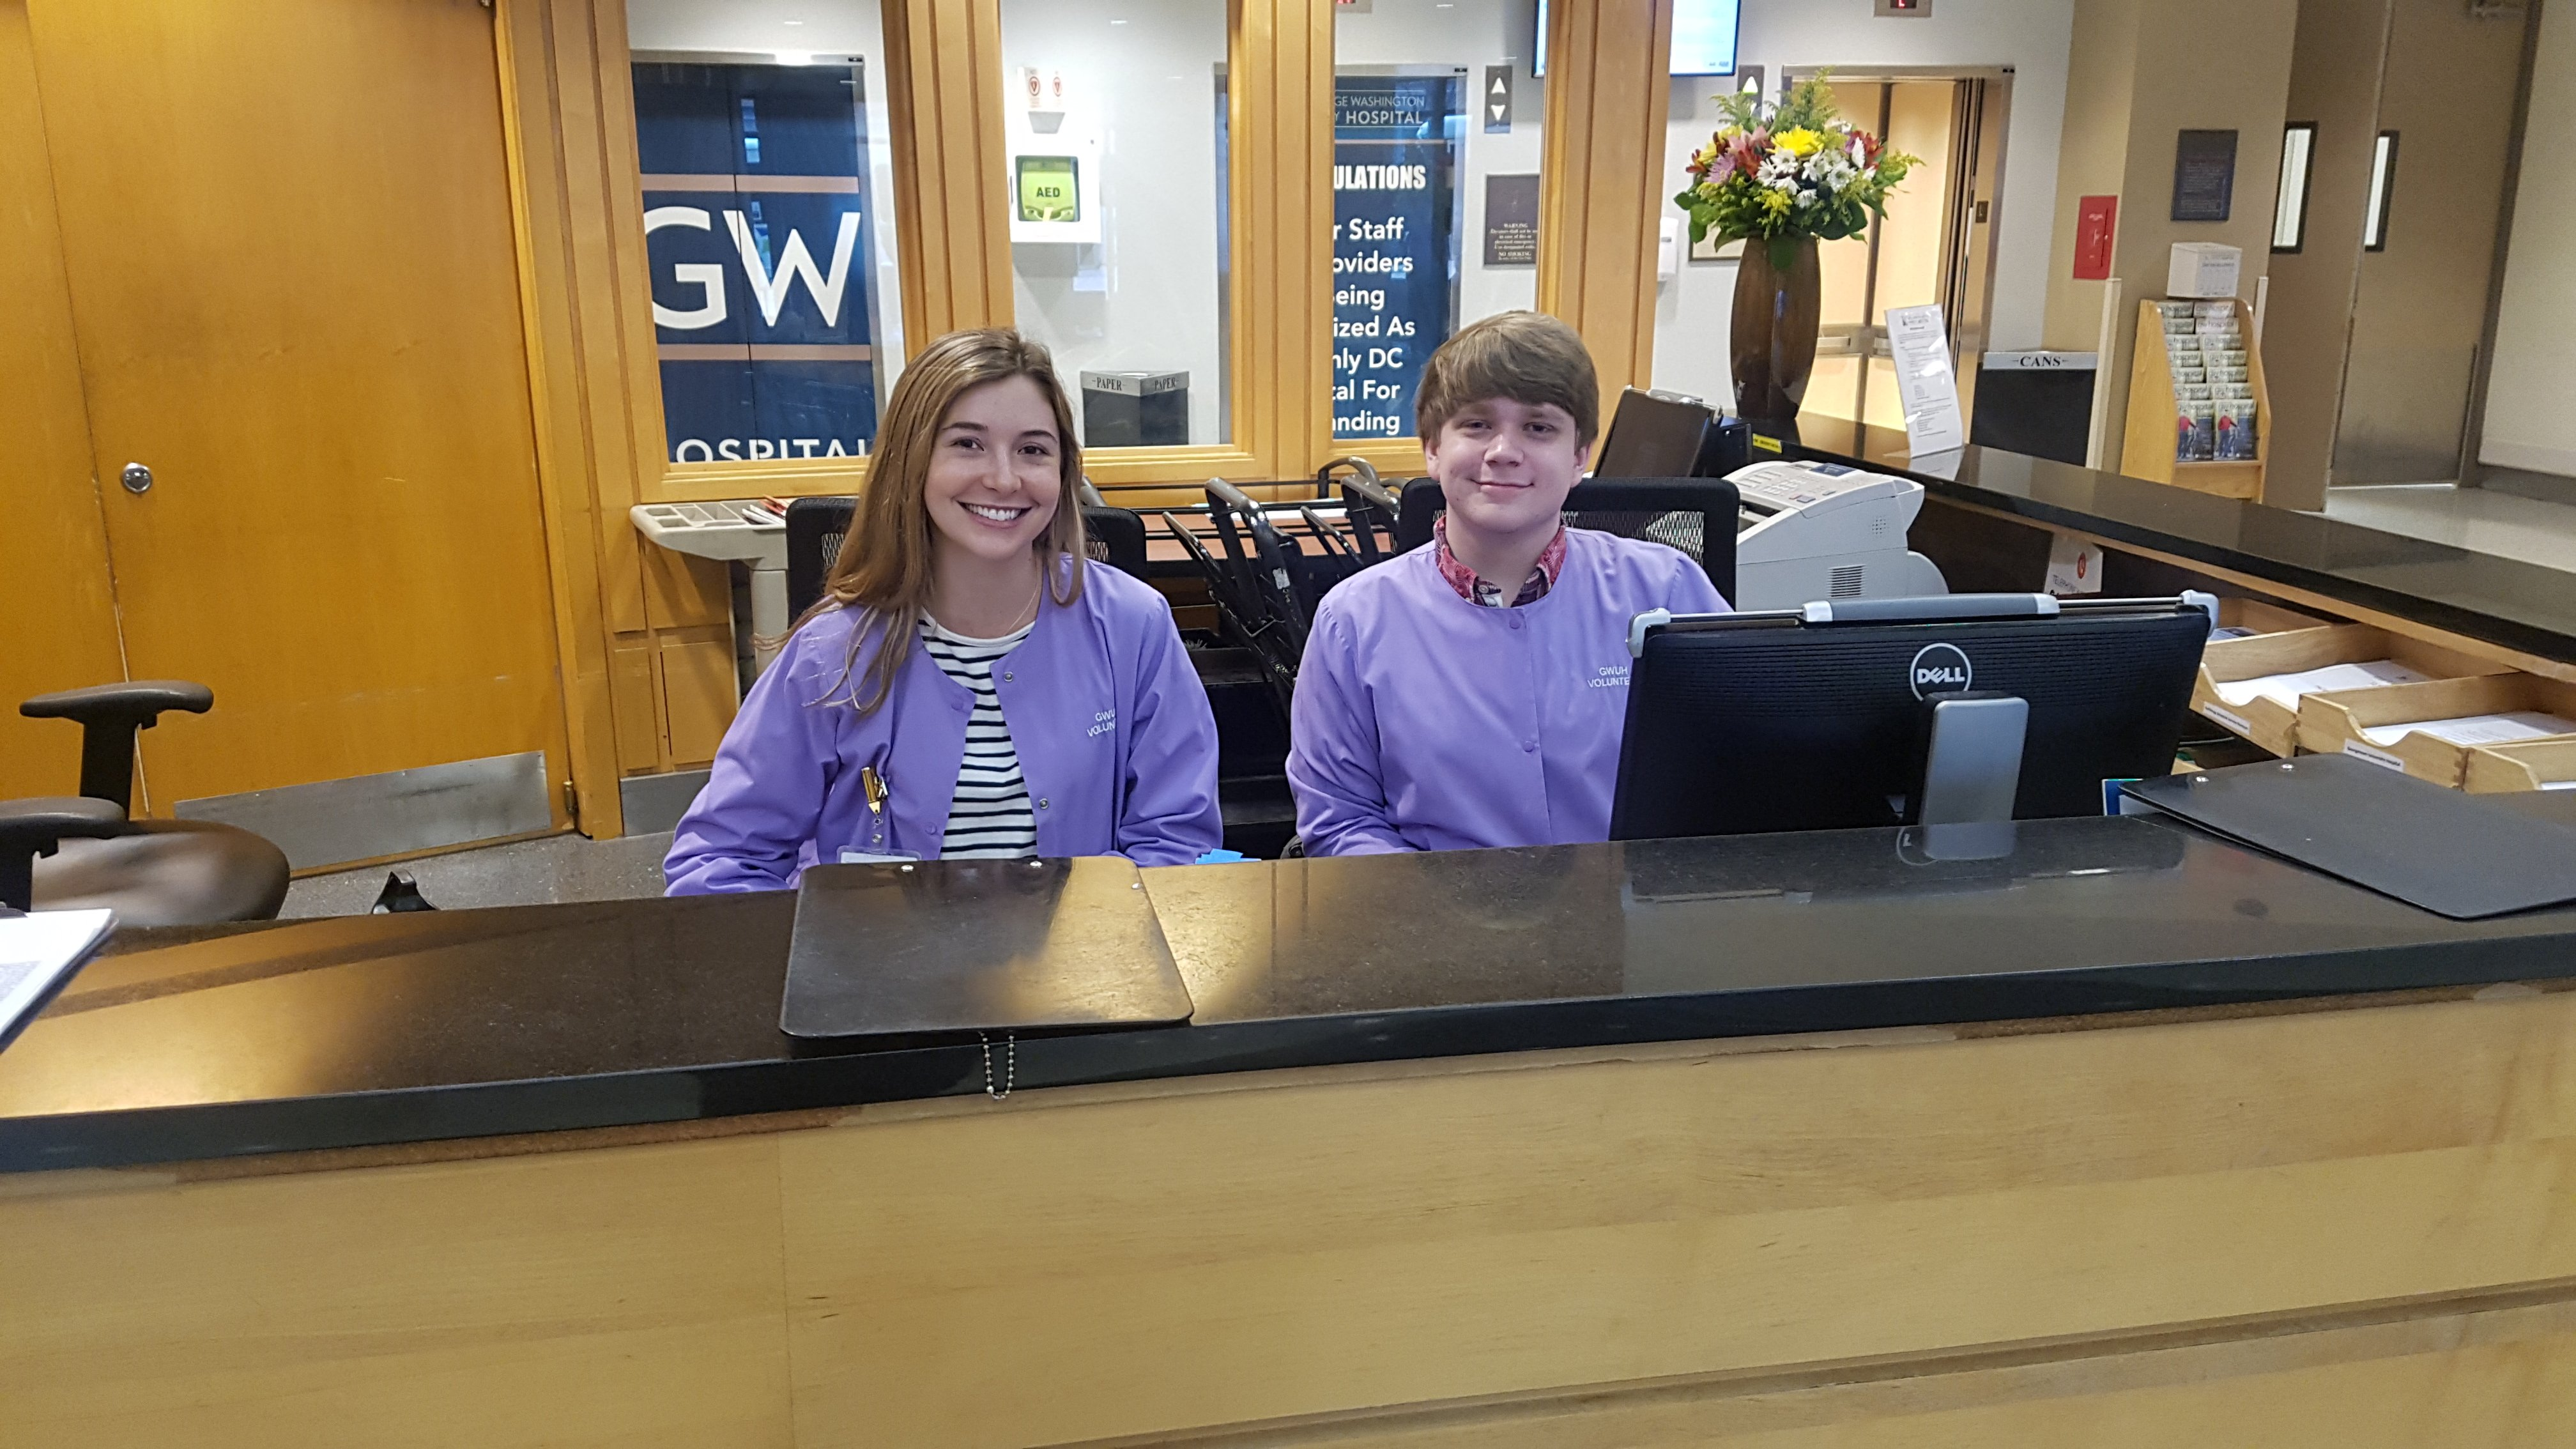 Volunteers Working At The GW  Hospital Reception Desk